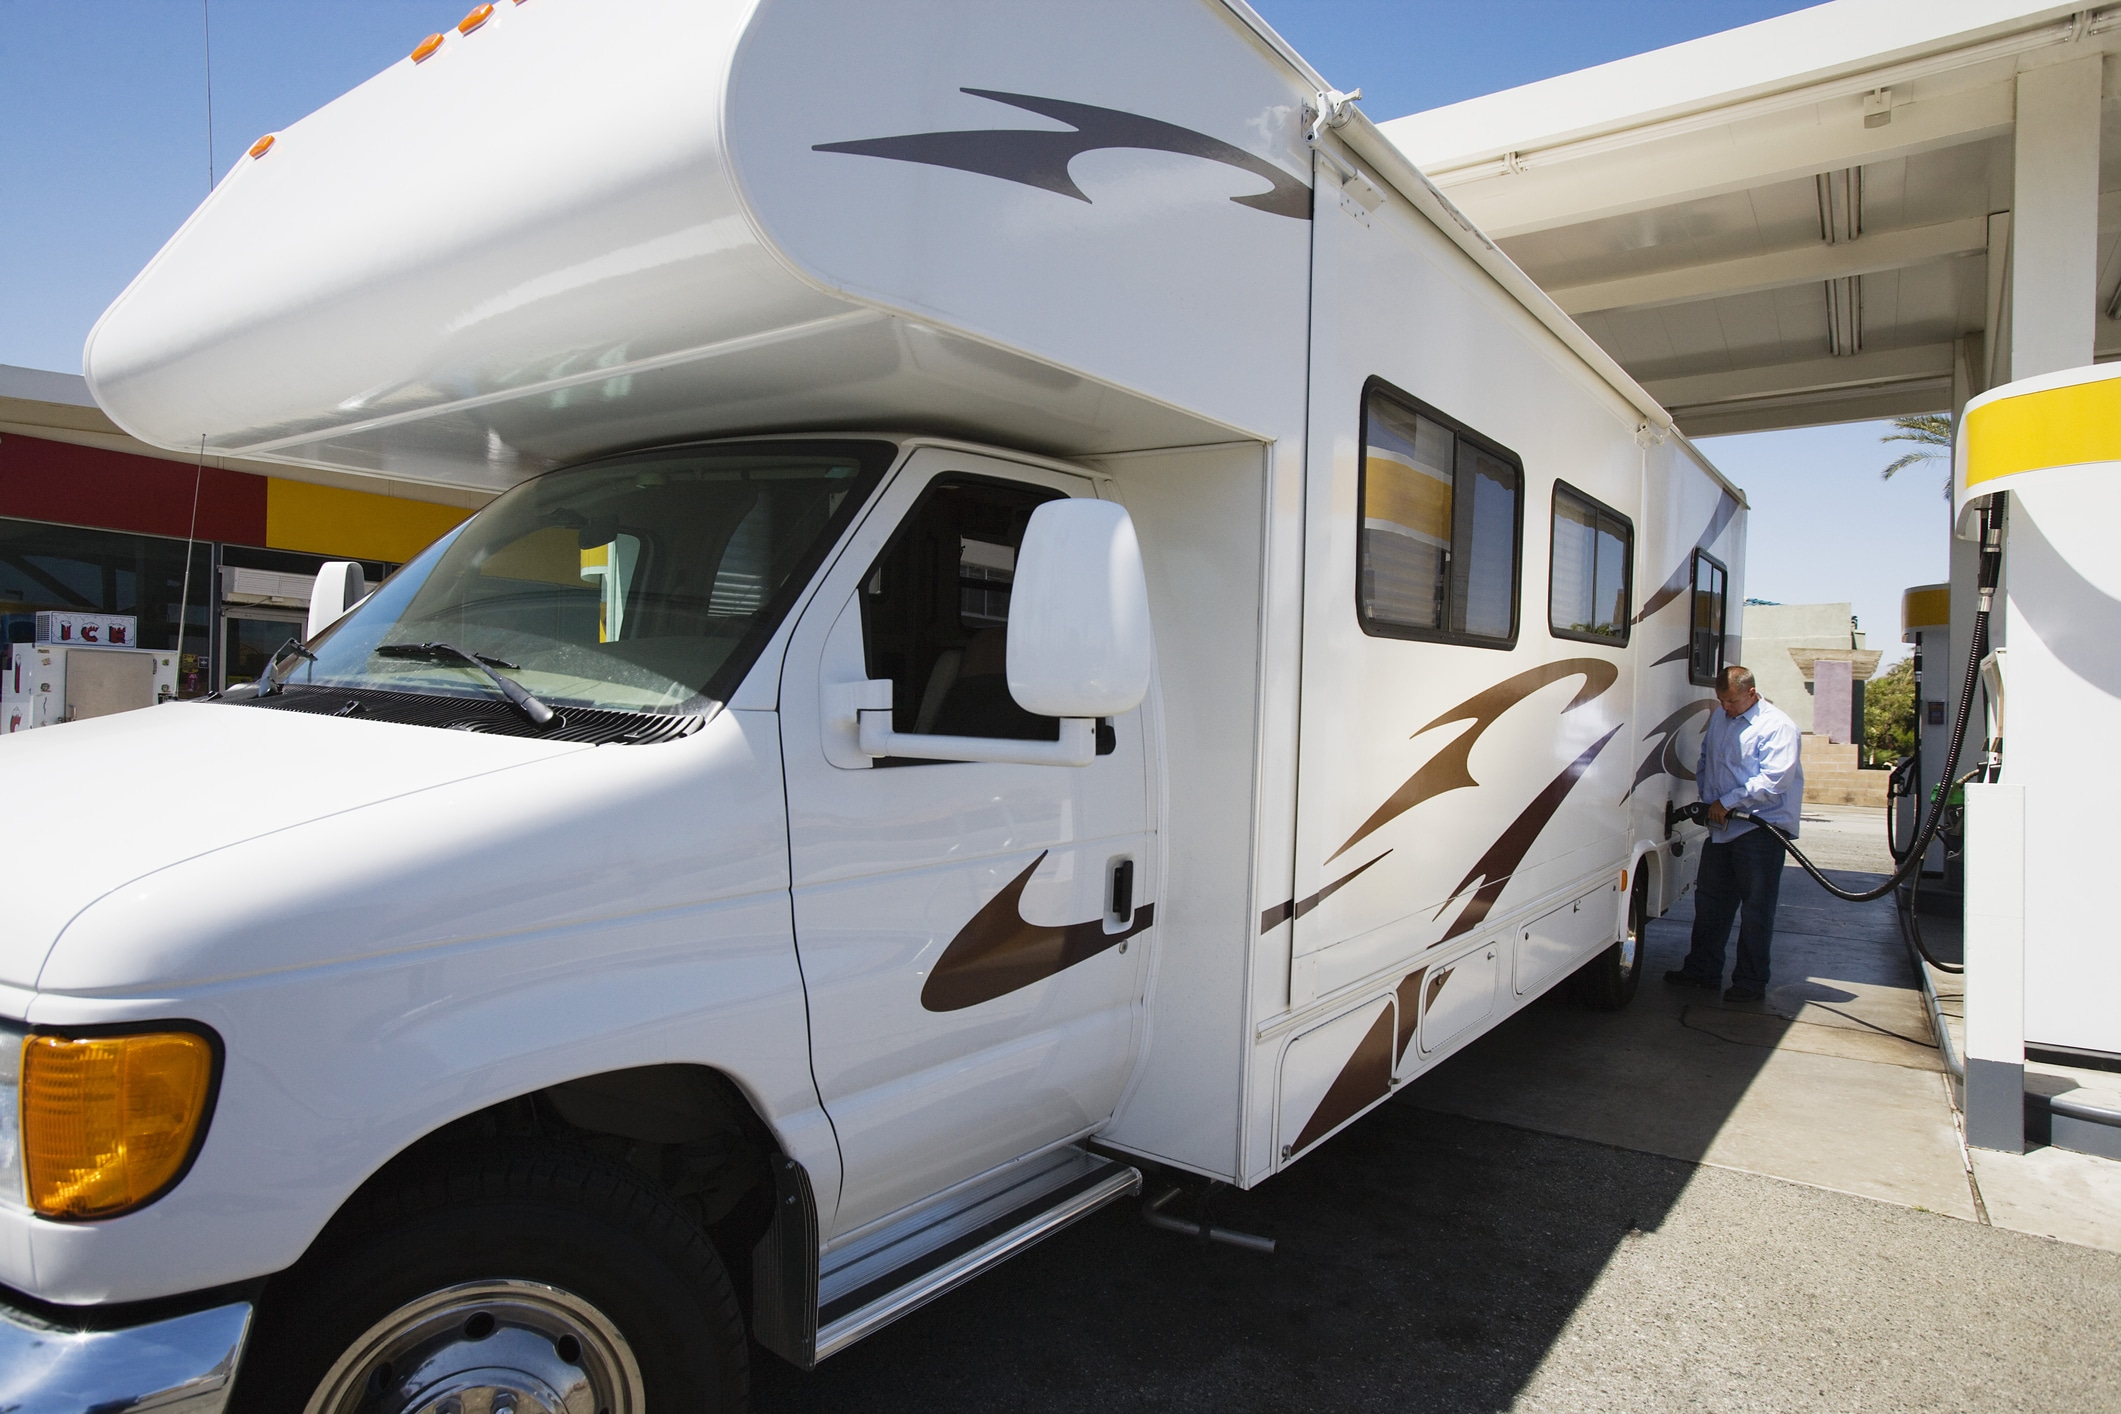 Refueling a Class C motorhome at a service station.